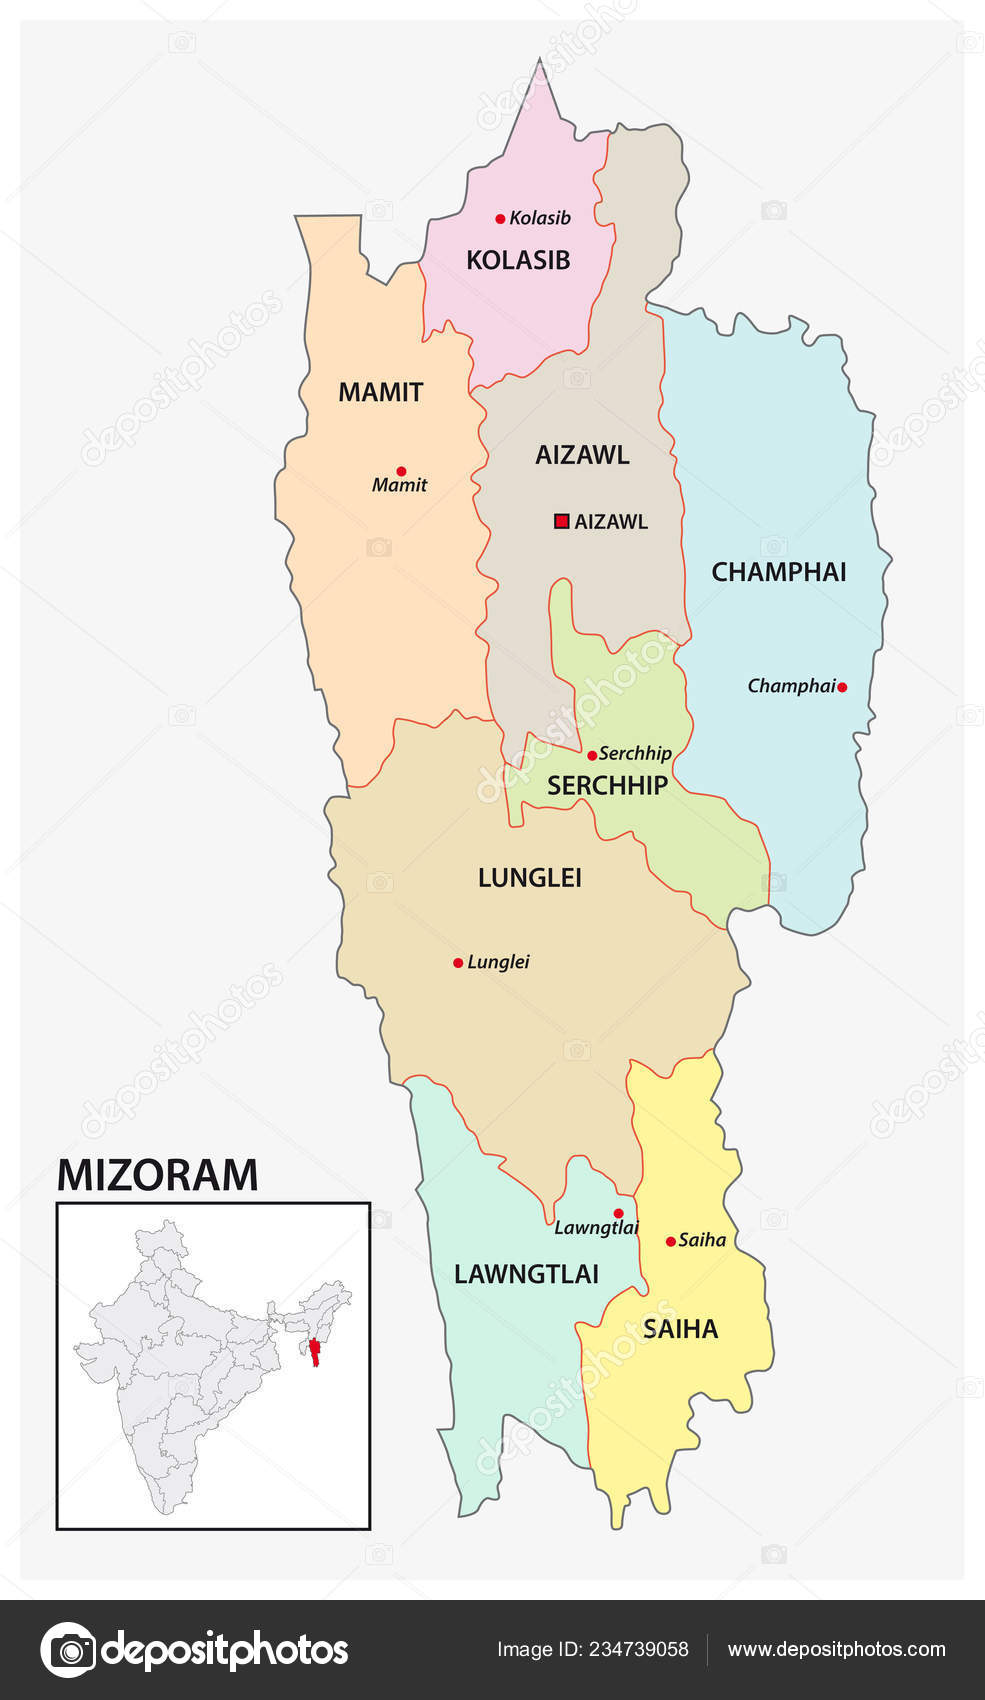 Administrative Political Map Indian State Mizoram India ... on india city map, india clear map, india floral designs, india boundary map, india landscape map, india wall map, india world heritage sites map, india base map, india solid map, india and pakistan border dispute, india caste system map, india green map, india henna map, india bangladesh border, india london map, bangladesh map, india travel map, india watershed map, india border art, india center map,